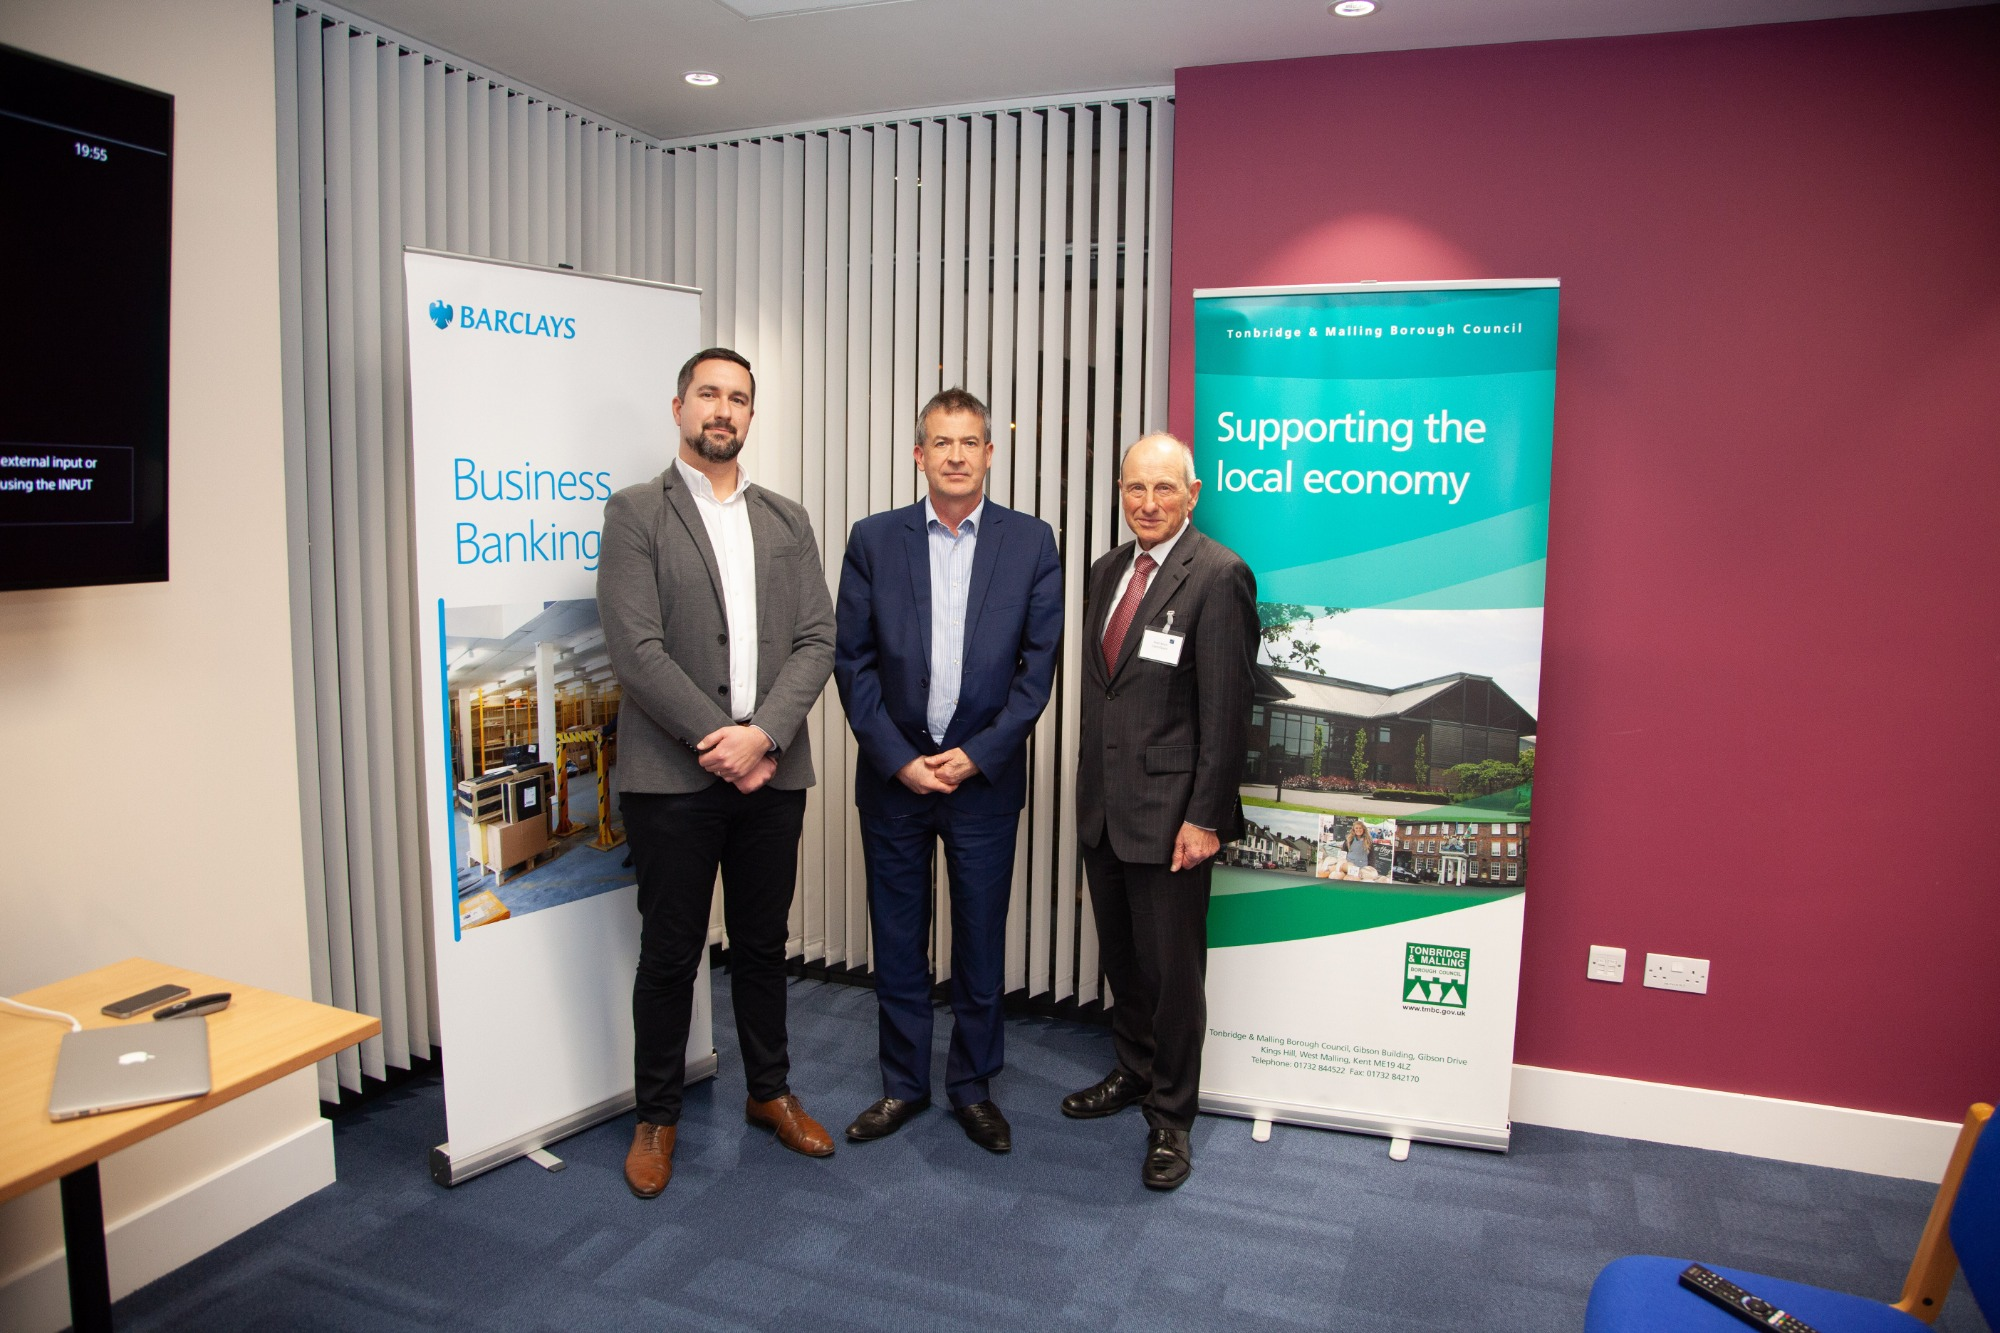 From left: Alex Douglas, Barclays; Nicholas Heslop, Tonbridge and Malling Borough Council and Peter Boam, Capital Space.